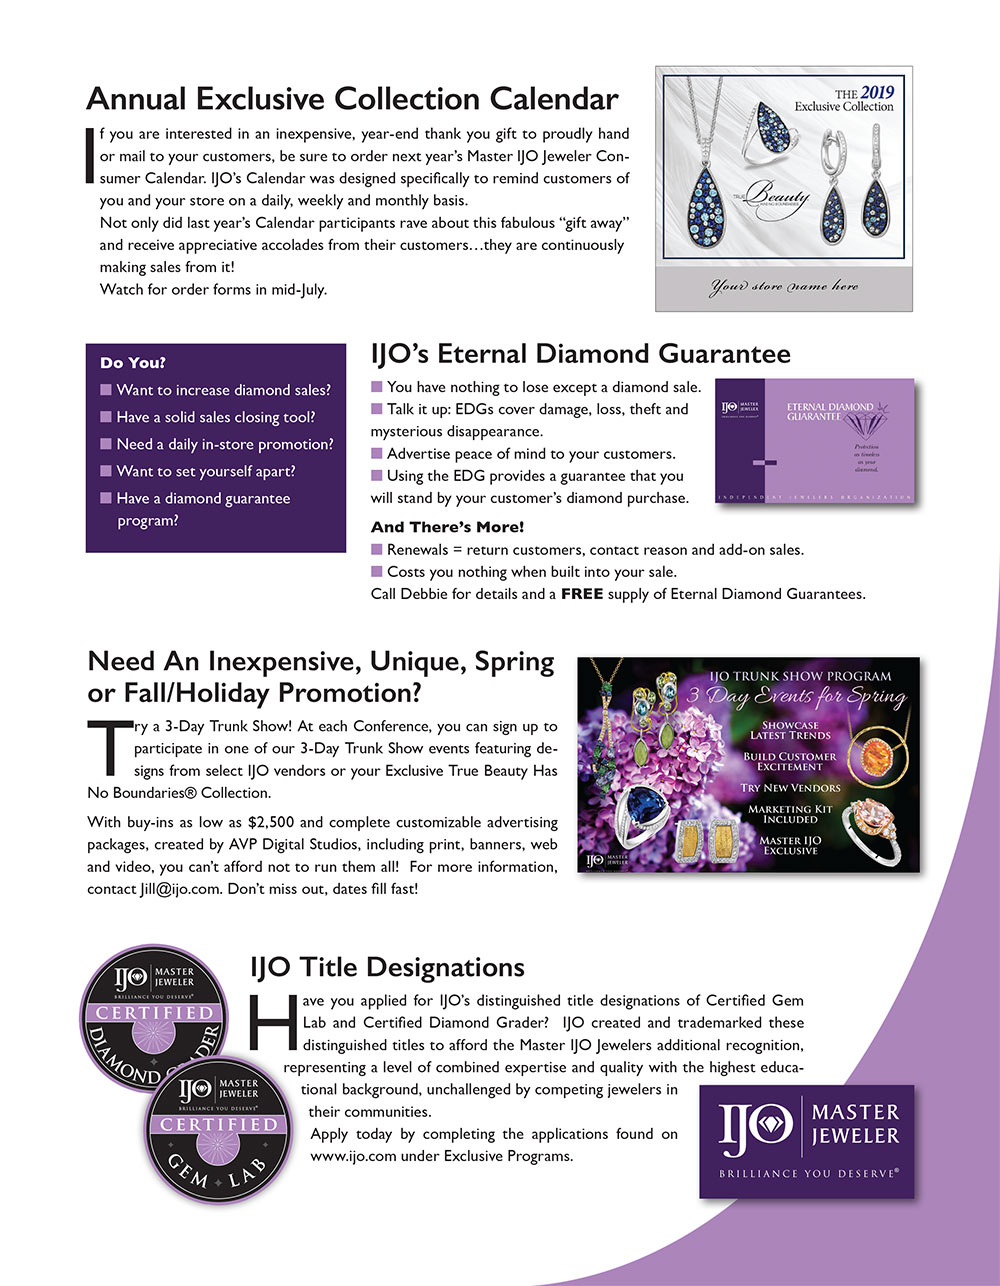 15 Ways IJO Makes You A Better Jeweler – Marketing Made Easy